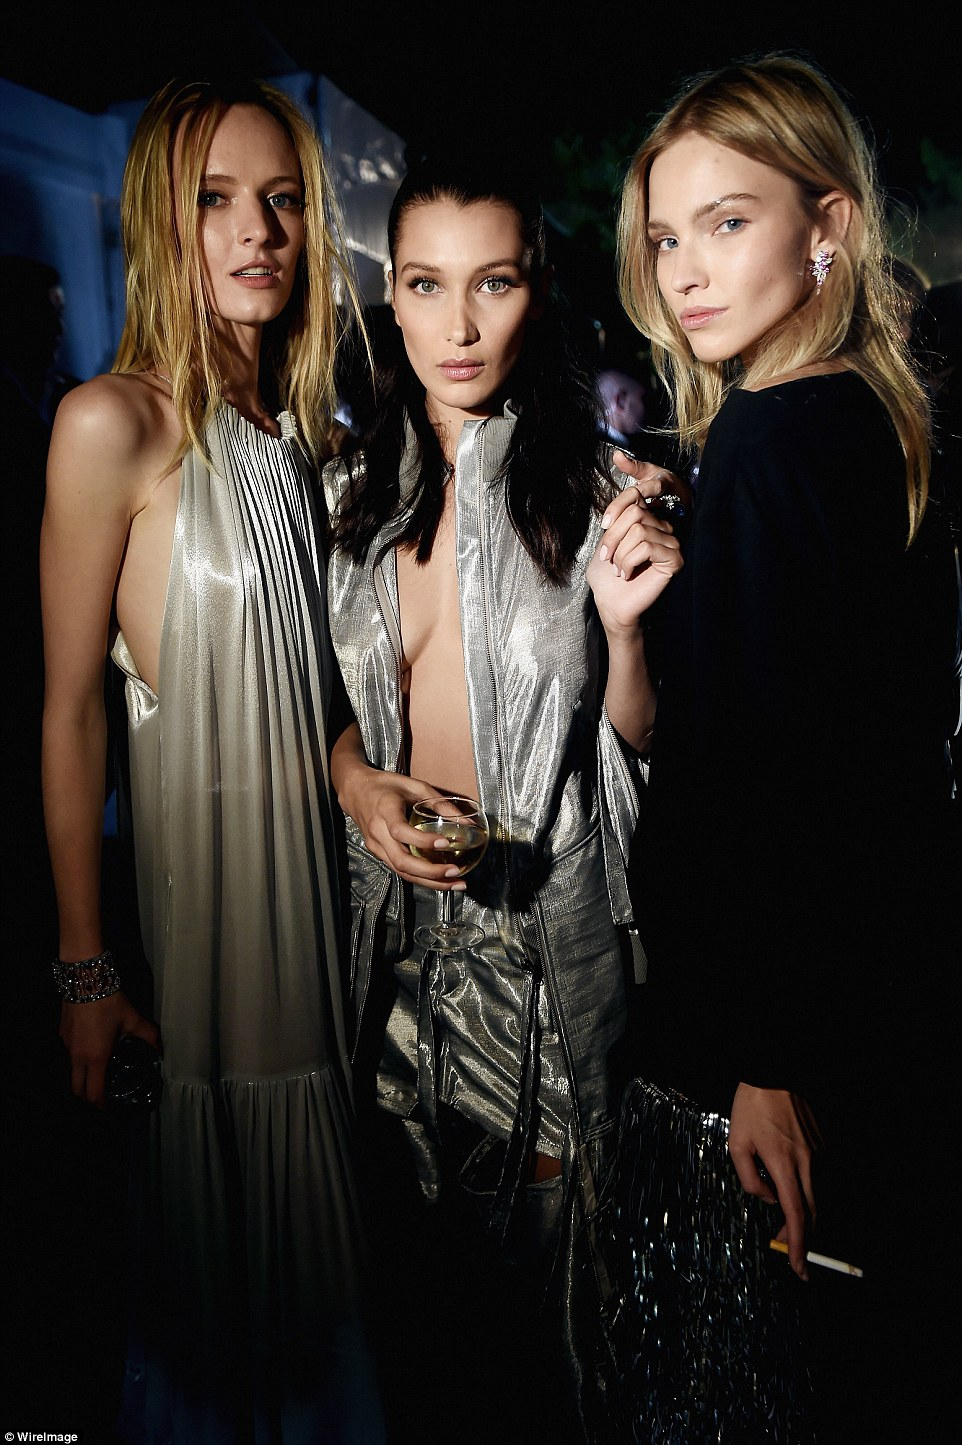 Smoking! Sasha Luss (right) held a cigarette in her hand as she stood with a scantily-clad Bella